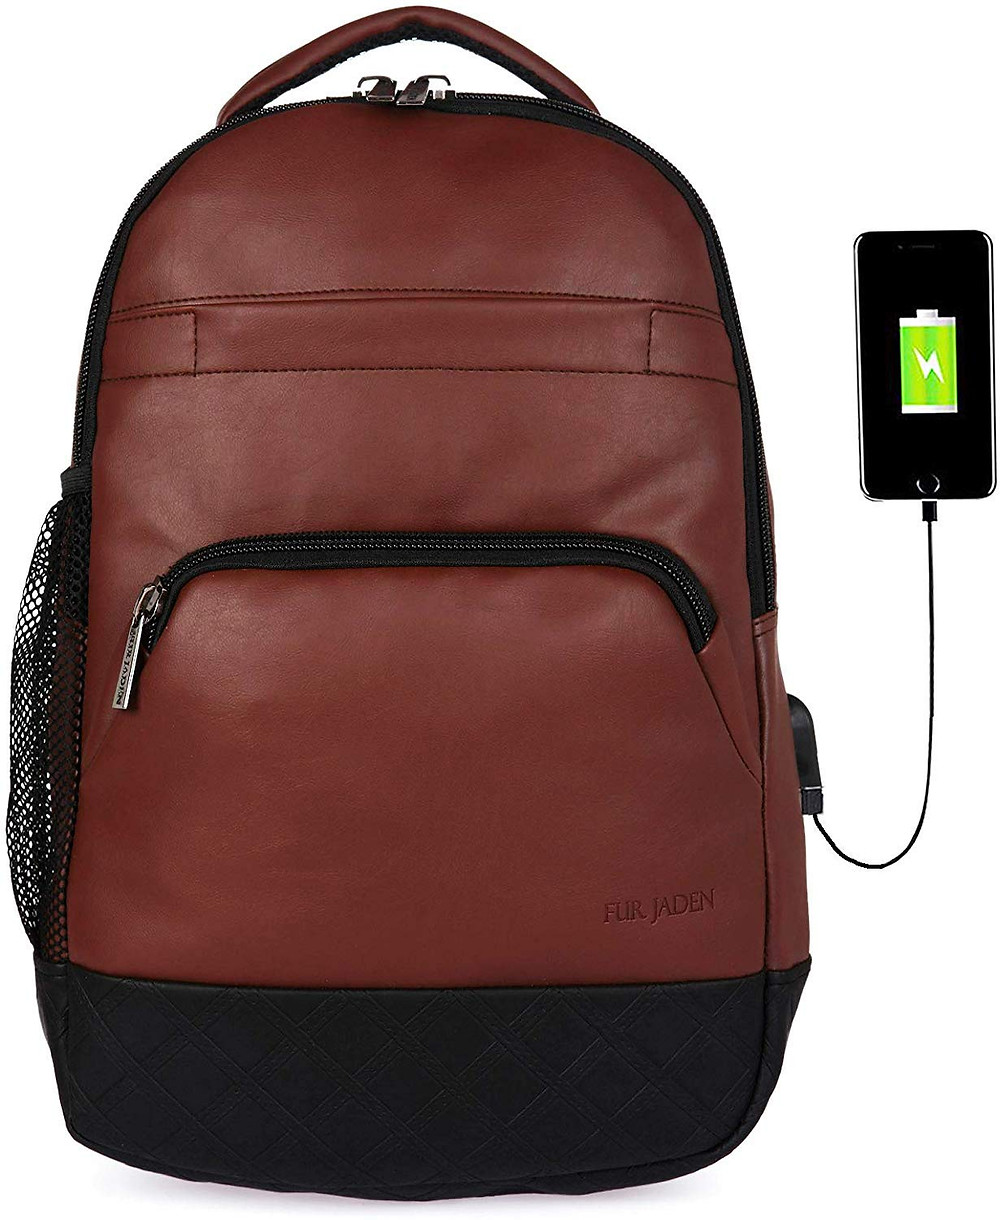 Unisex LAptop Backpack with USB Charger